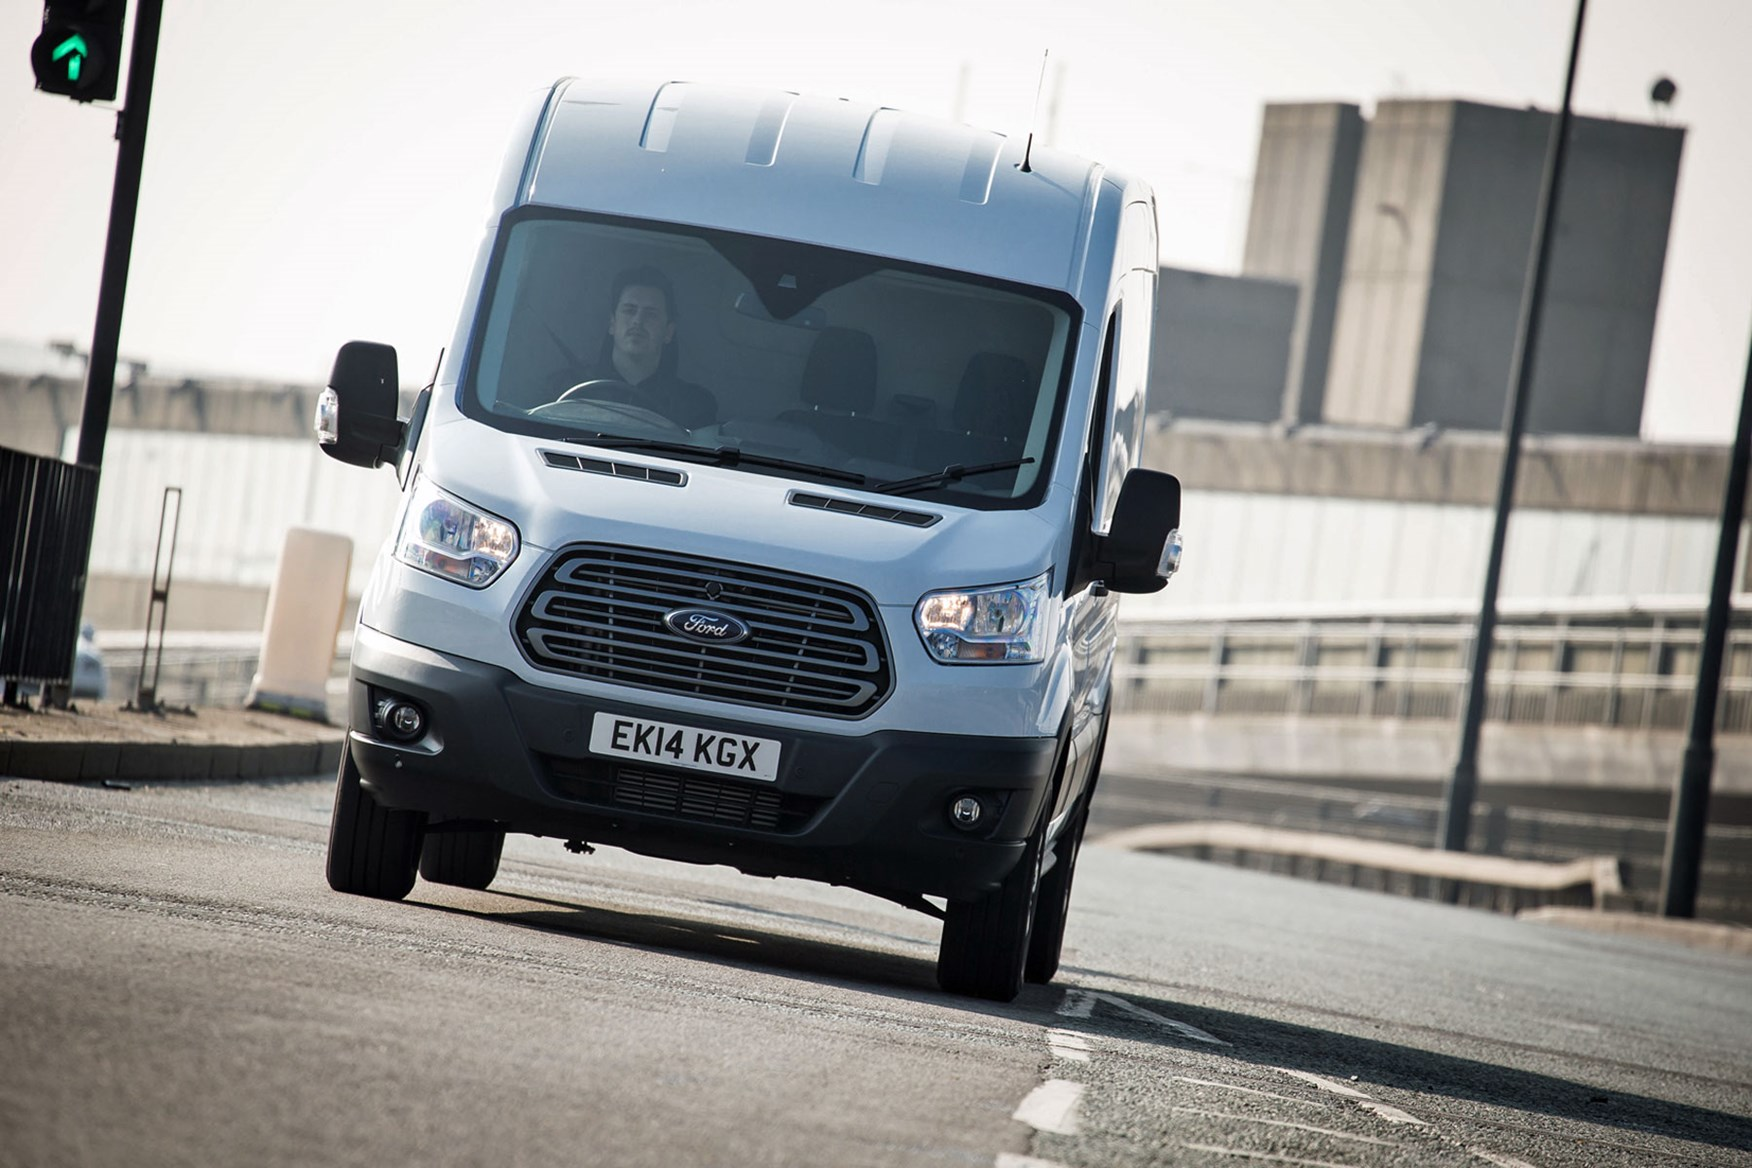 Ford Transit (2014-on) mpg, costs, value